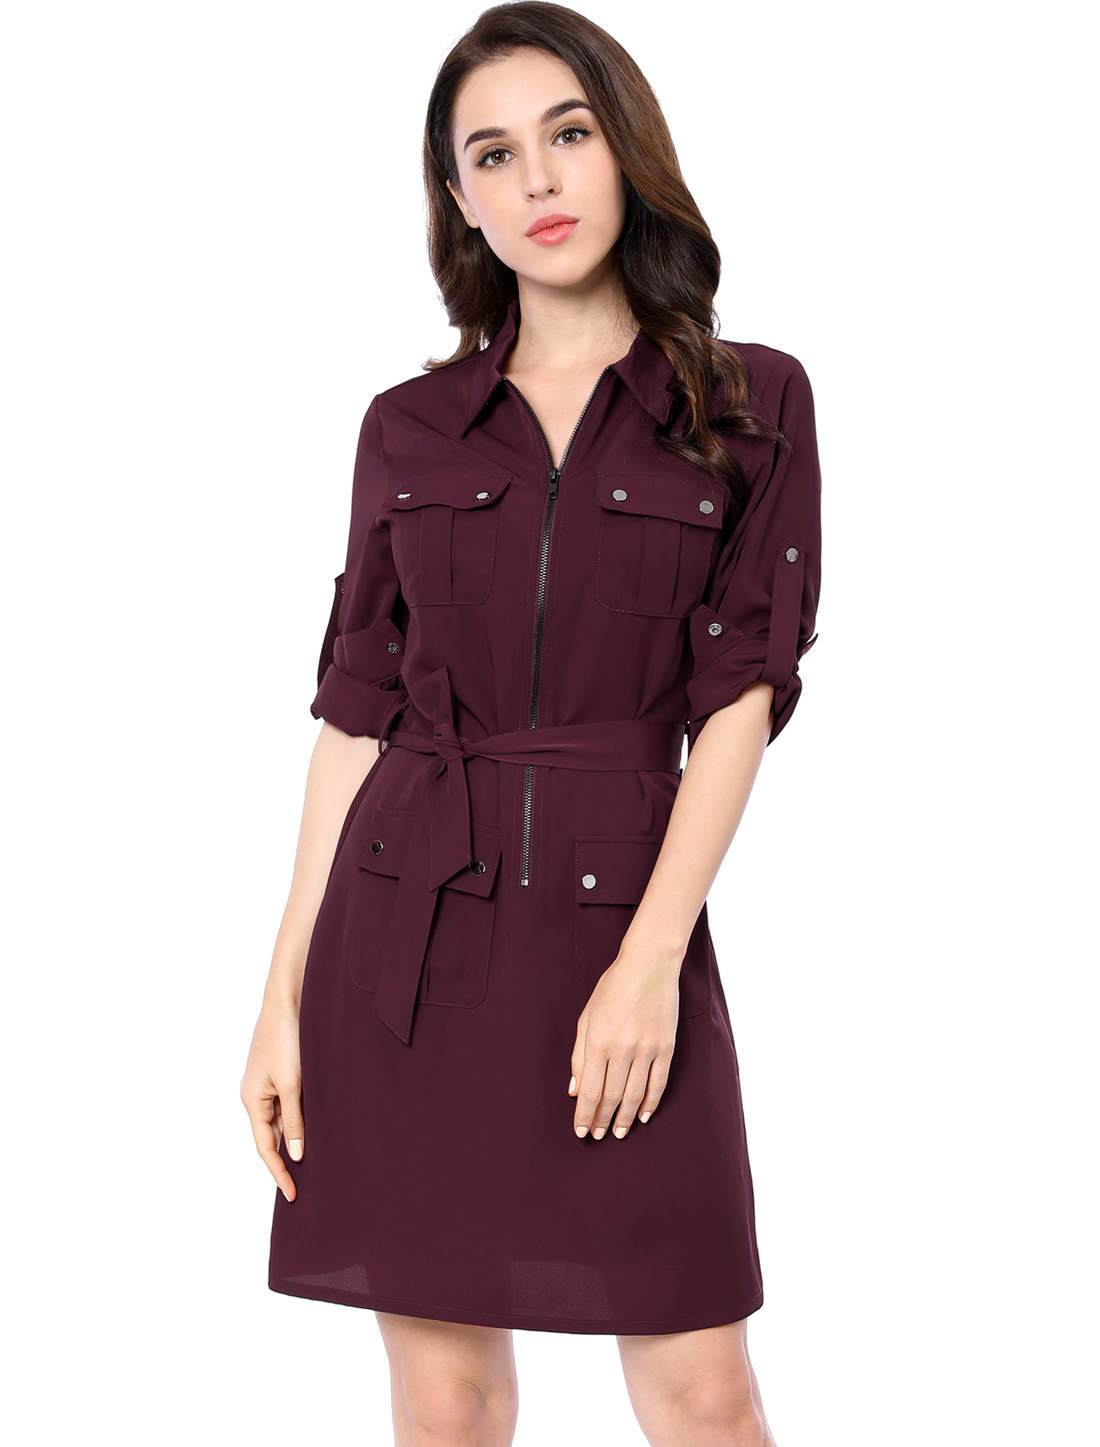 Women Roll Up Sleeves Multi-Pocket Above Knee Belted Shirt Dress Red XS